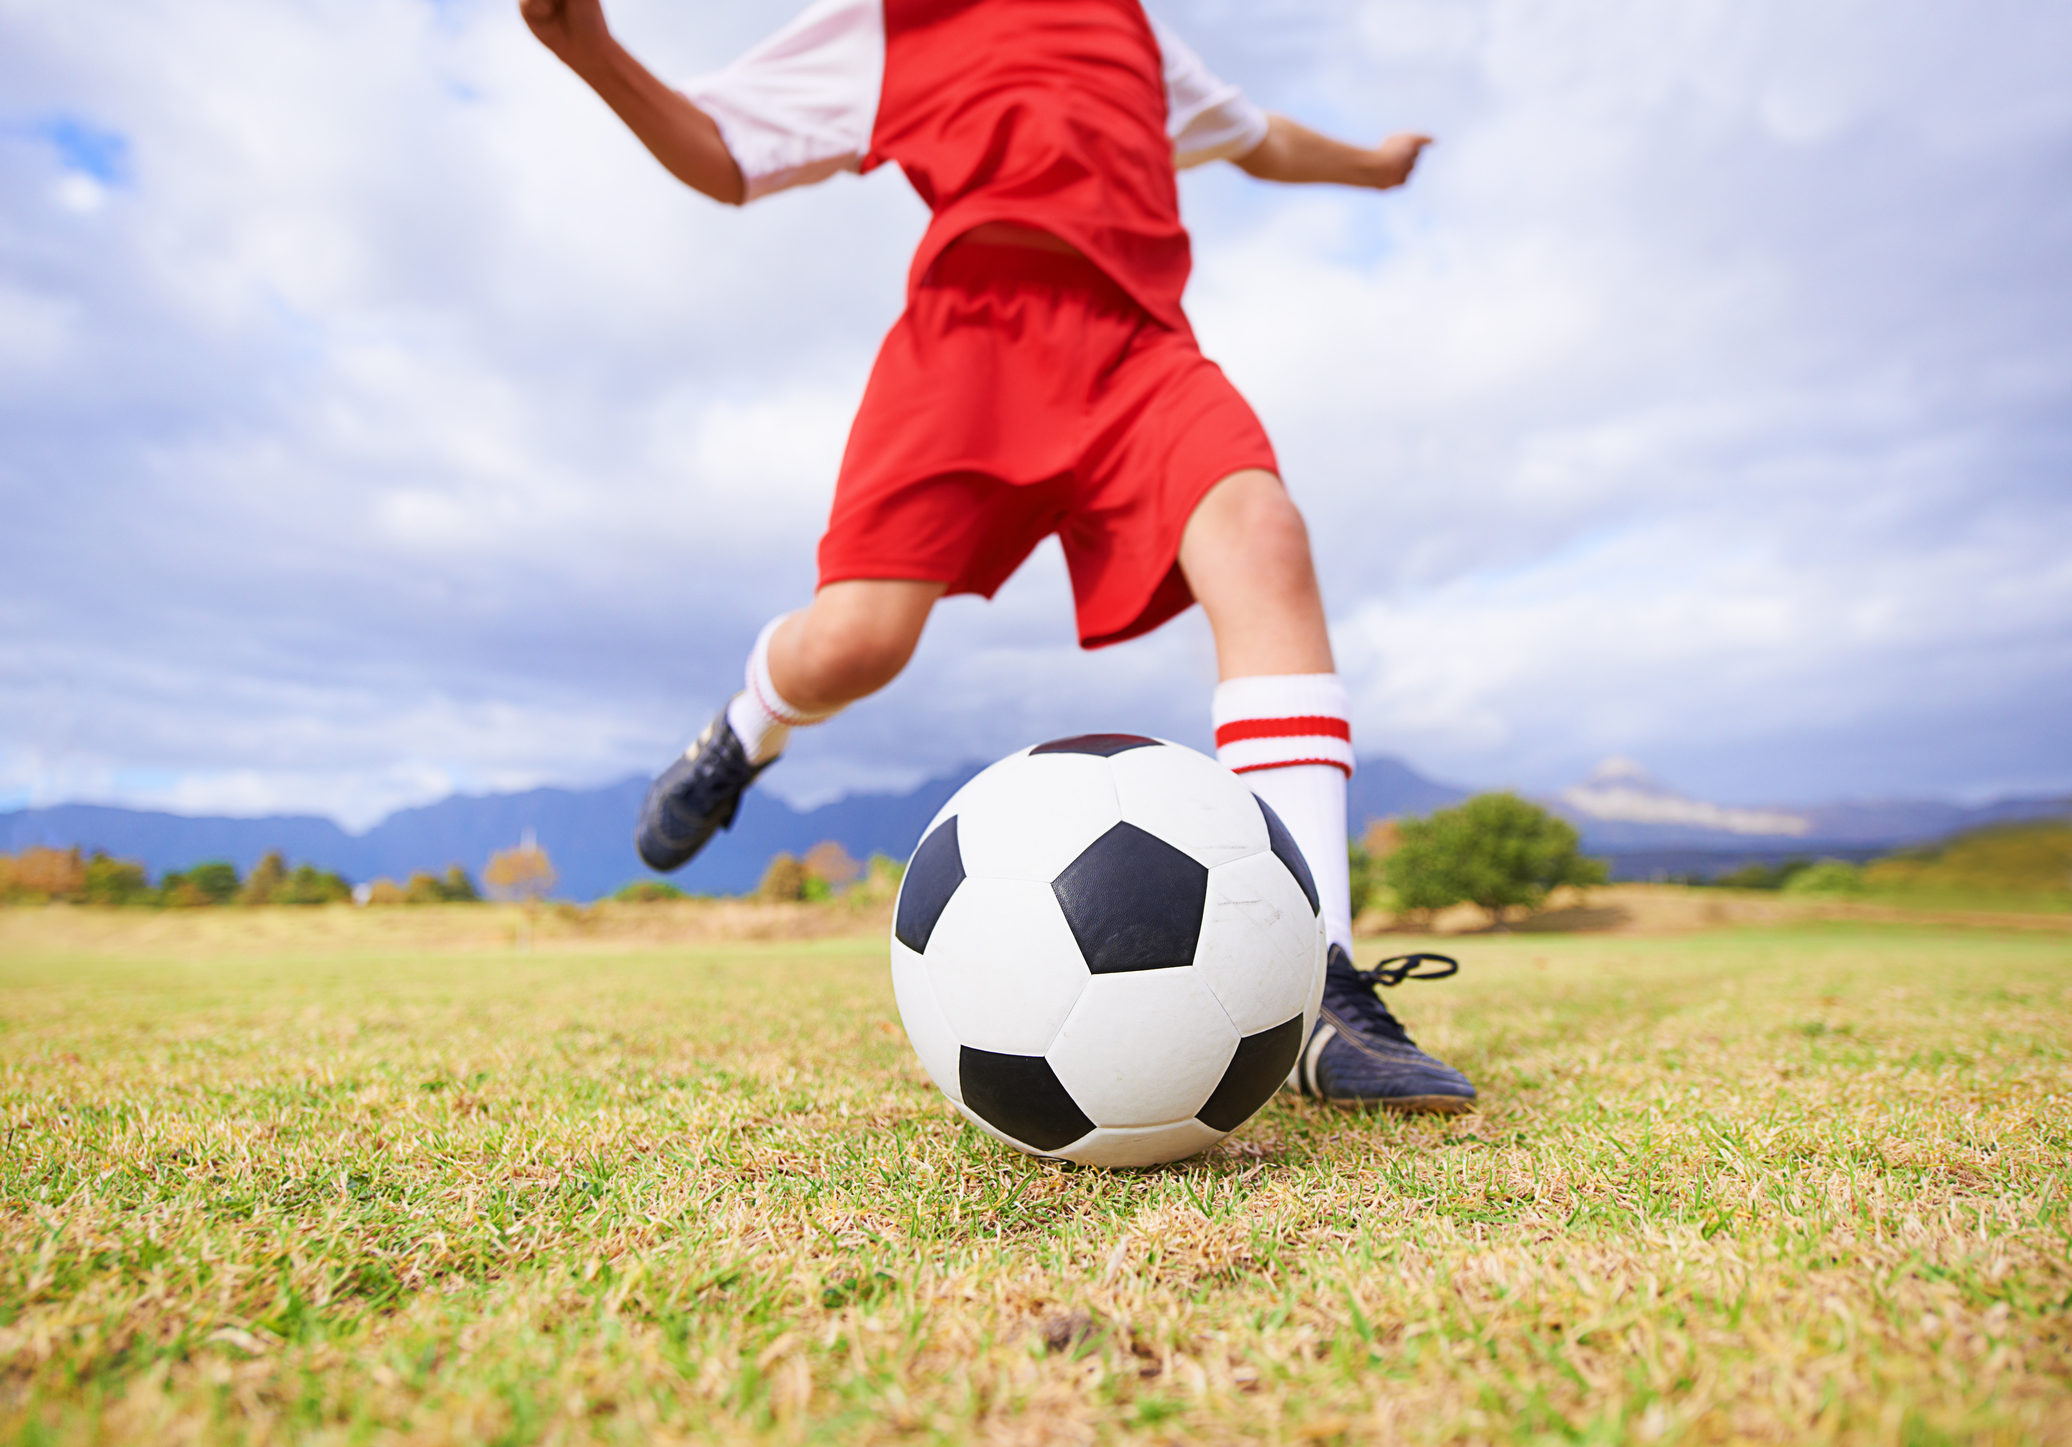 Cropped image of a child kicking a soccer ball